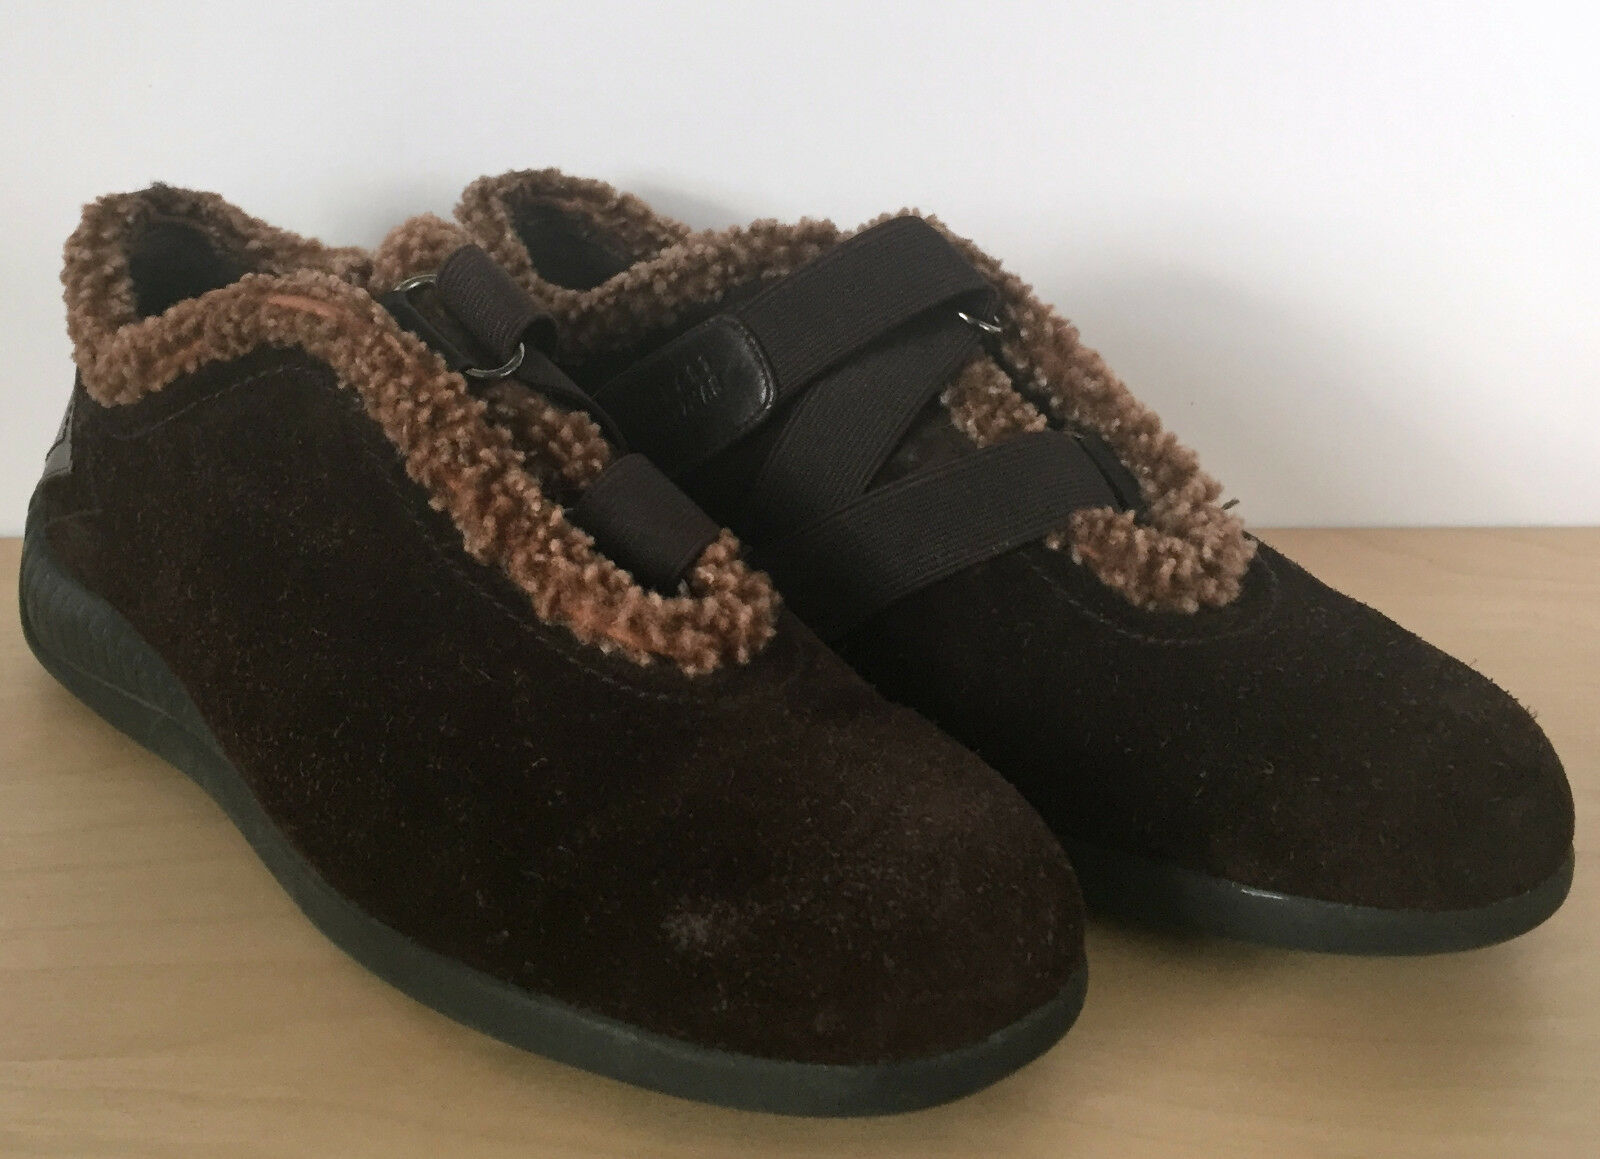 STUART WEITZMAN Womens Brown Suede Leather Fleece Lined Strap Shoes 6.5